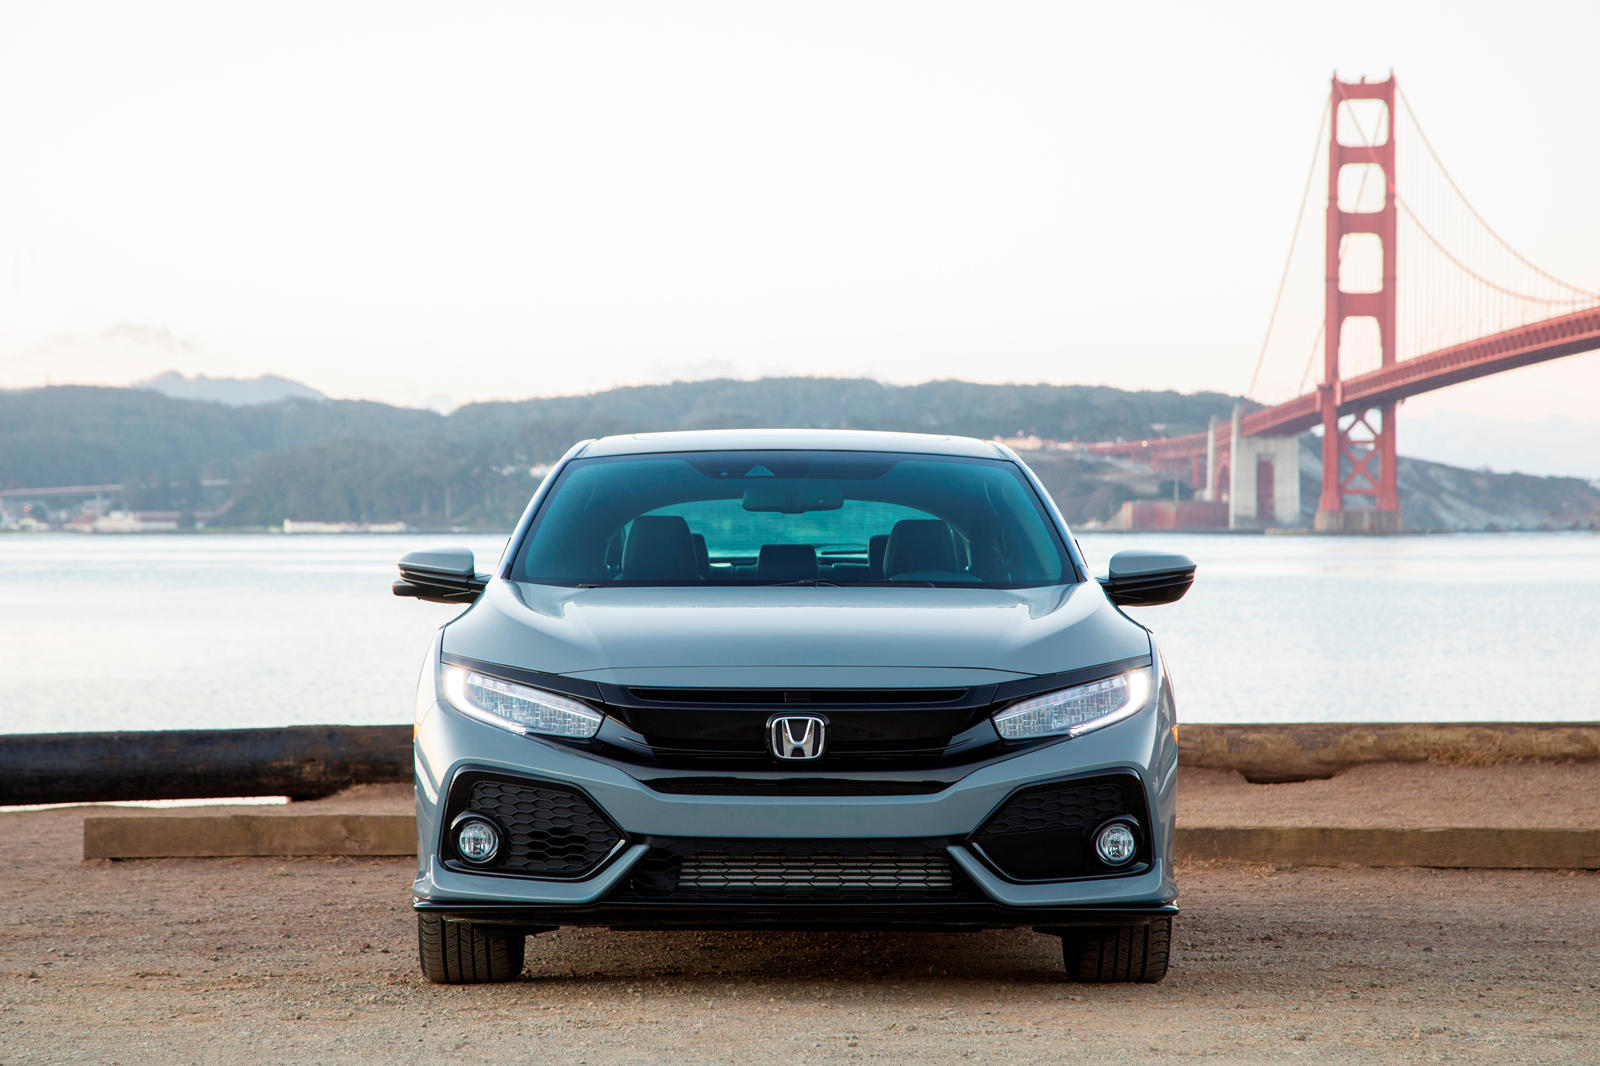 2020 Honda Civic Hatchback Exterior front view